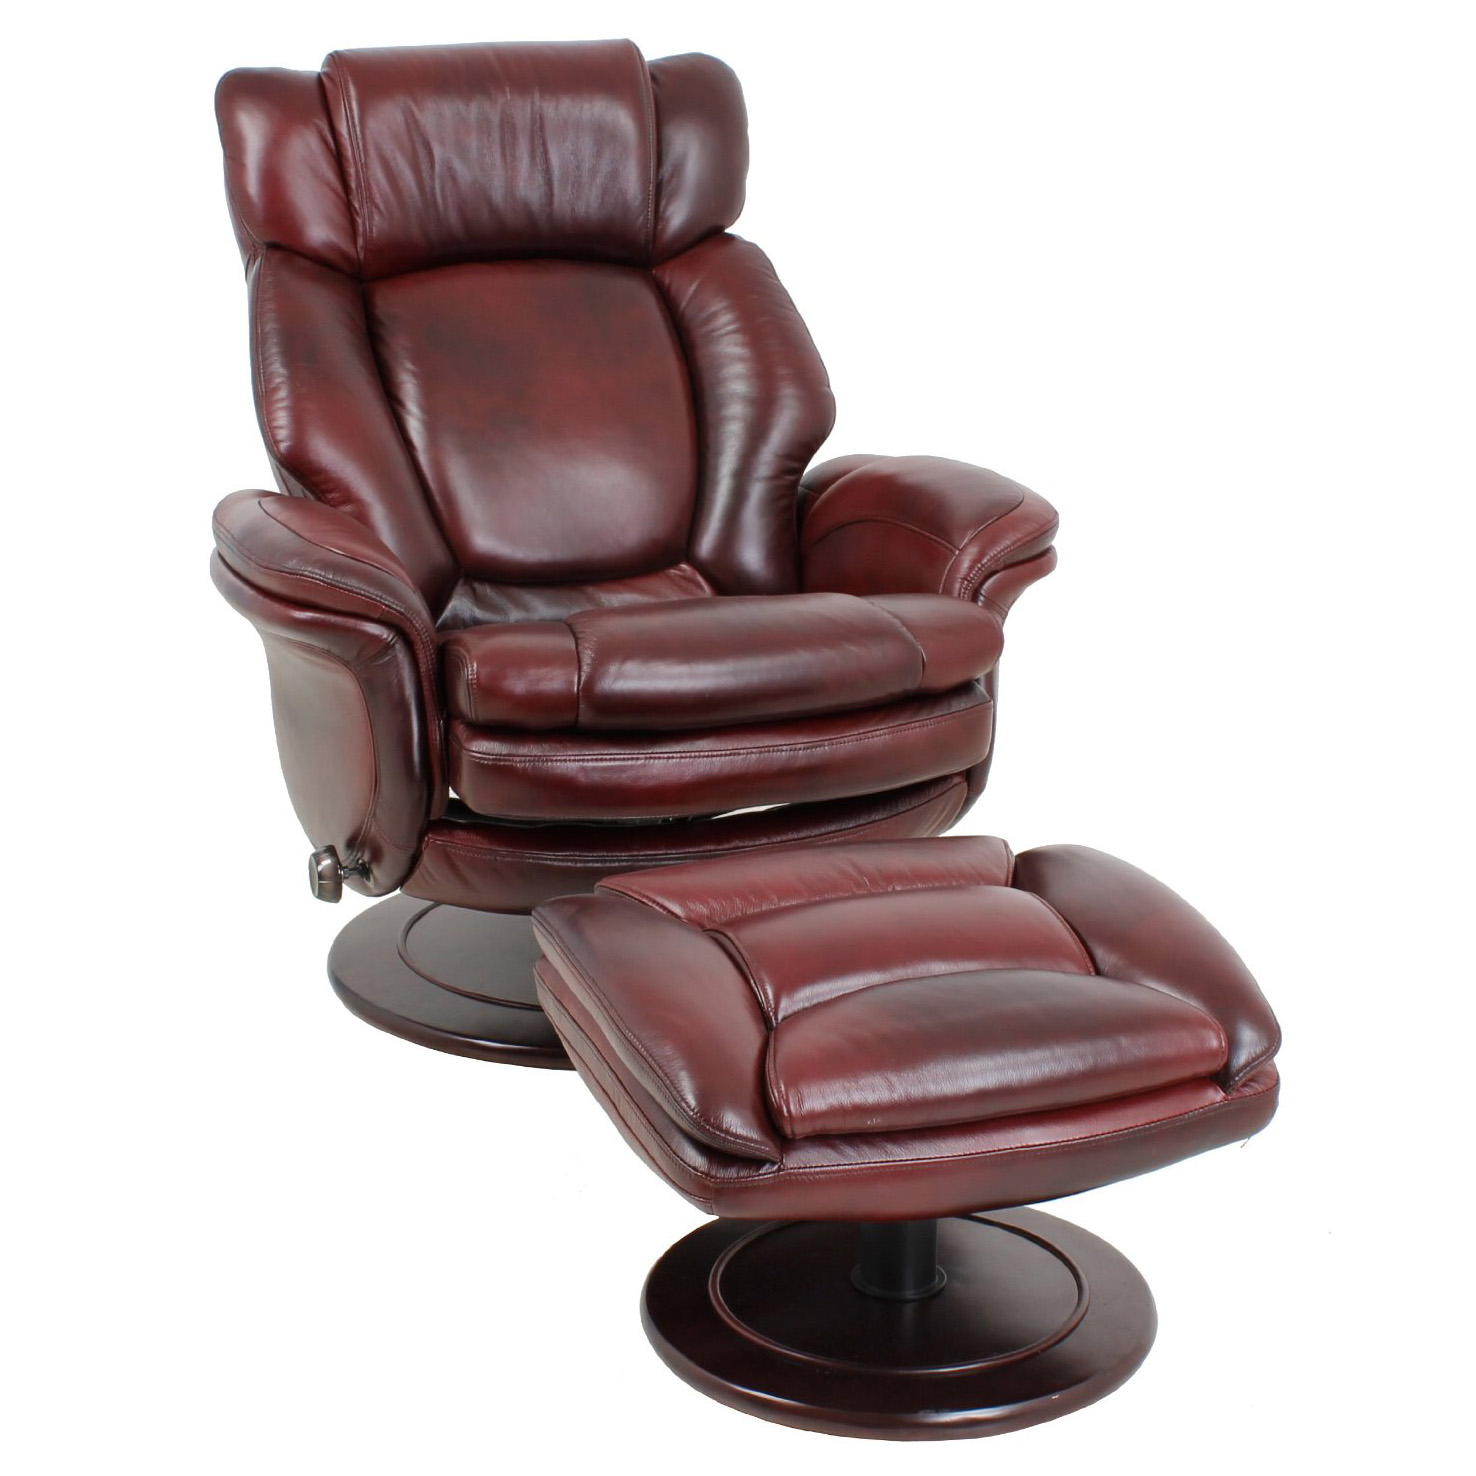 Barcalounger Lumina Ii Recliner Chair And Ottoman